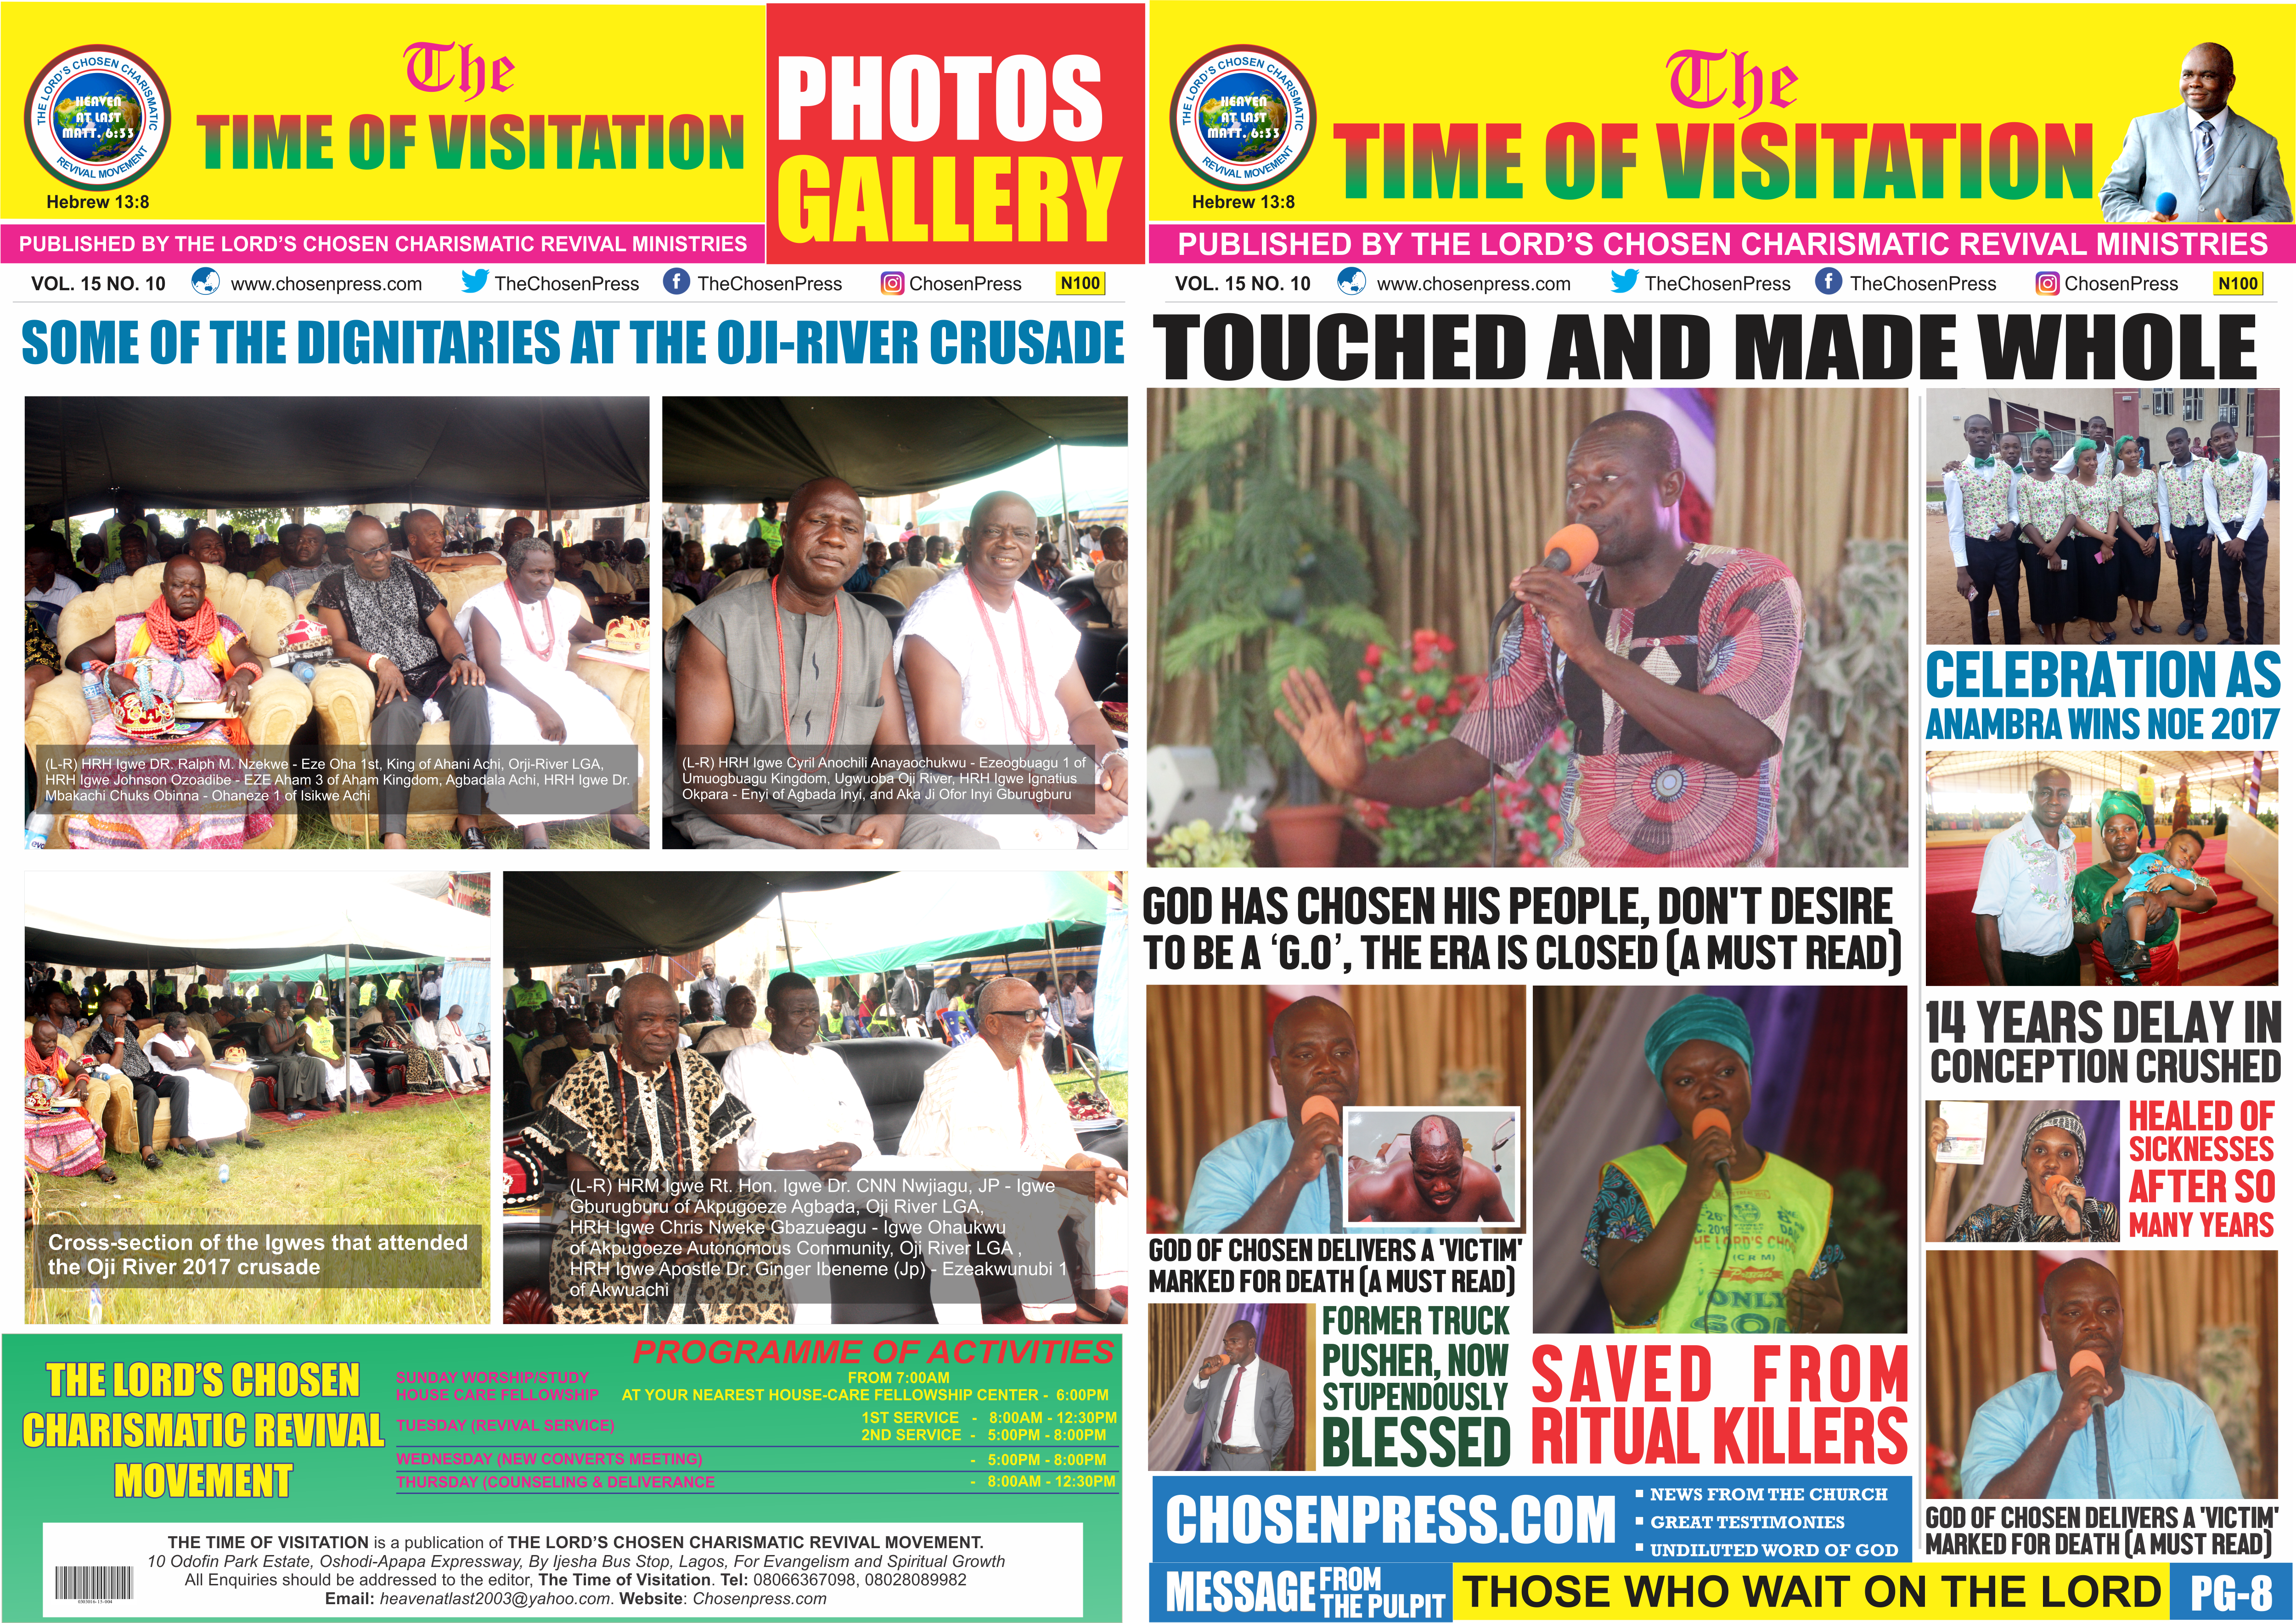 BABY AFTER 14 YEARS, SAVED FROM RITUAL KILLERS – TOP TESTIMONIES ON TIME OF VISITATION VOL. VOL. 15 NO.